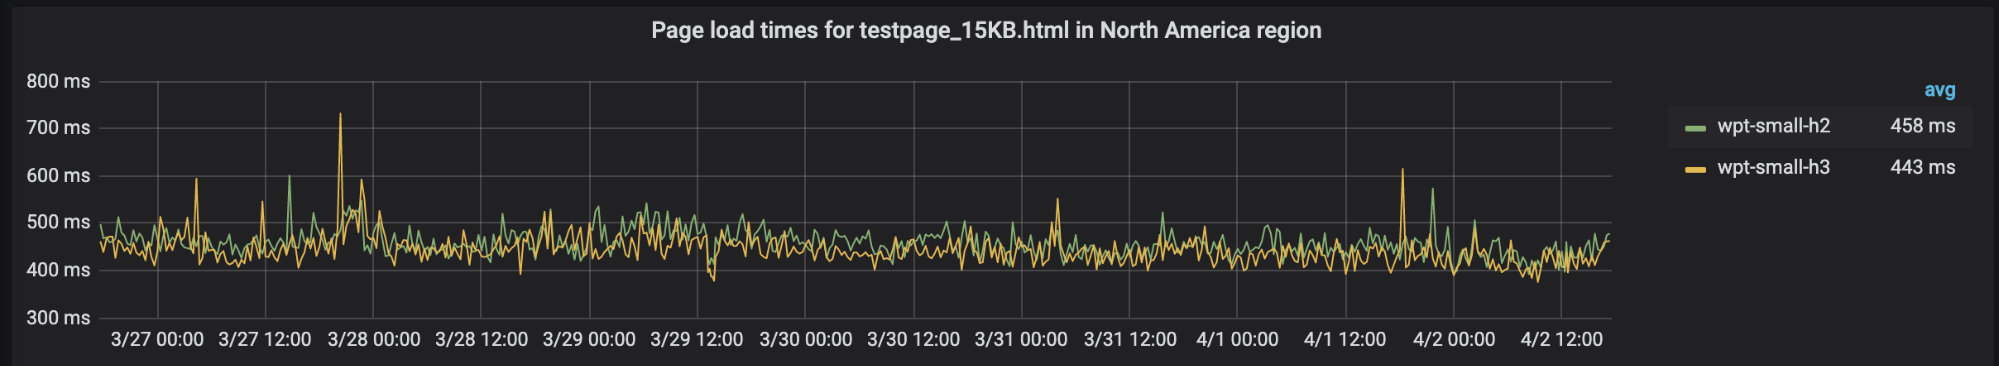 Comparing HTTP/3 vs. HTTP/2 Performance